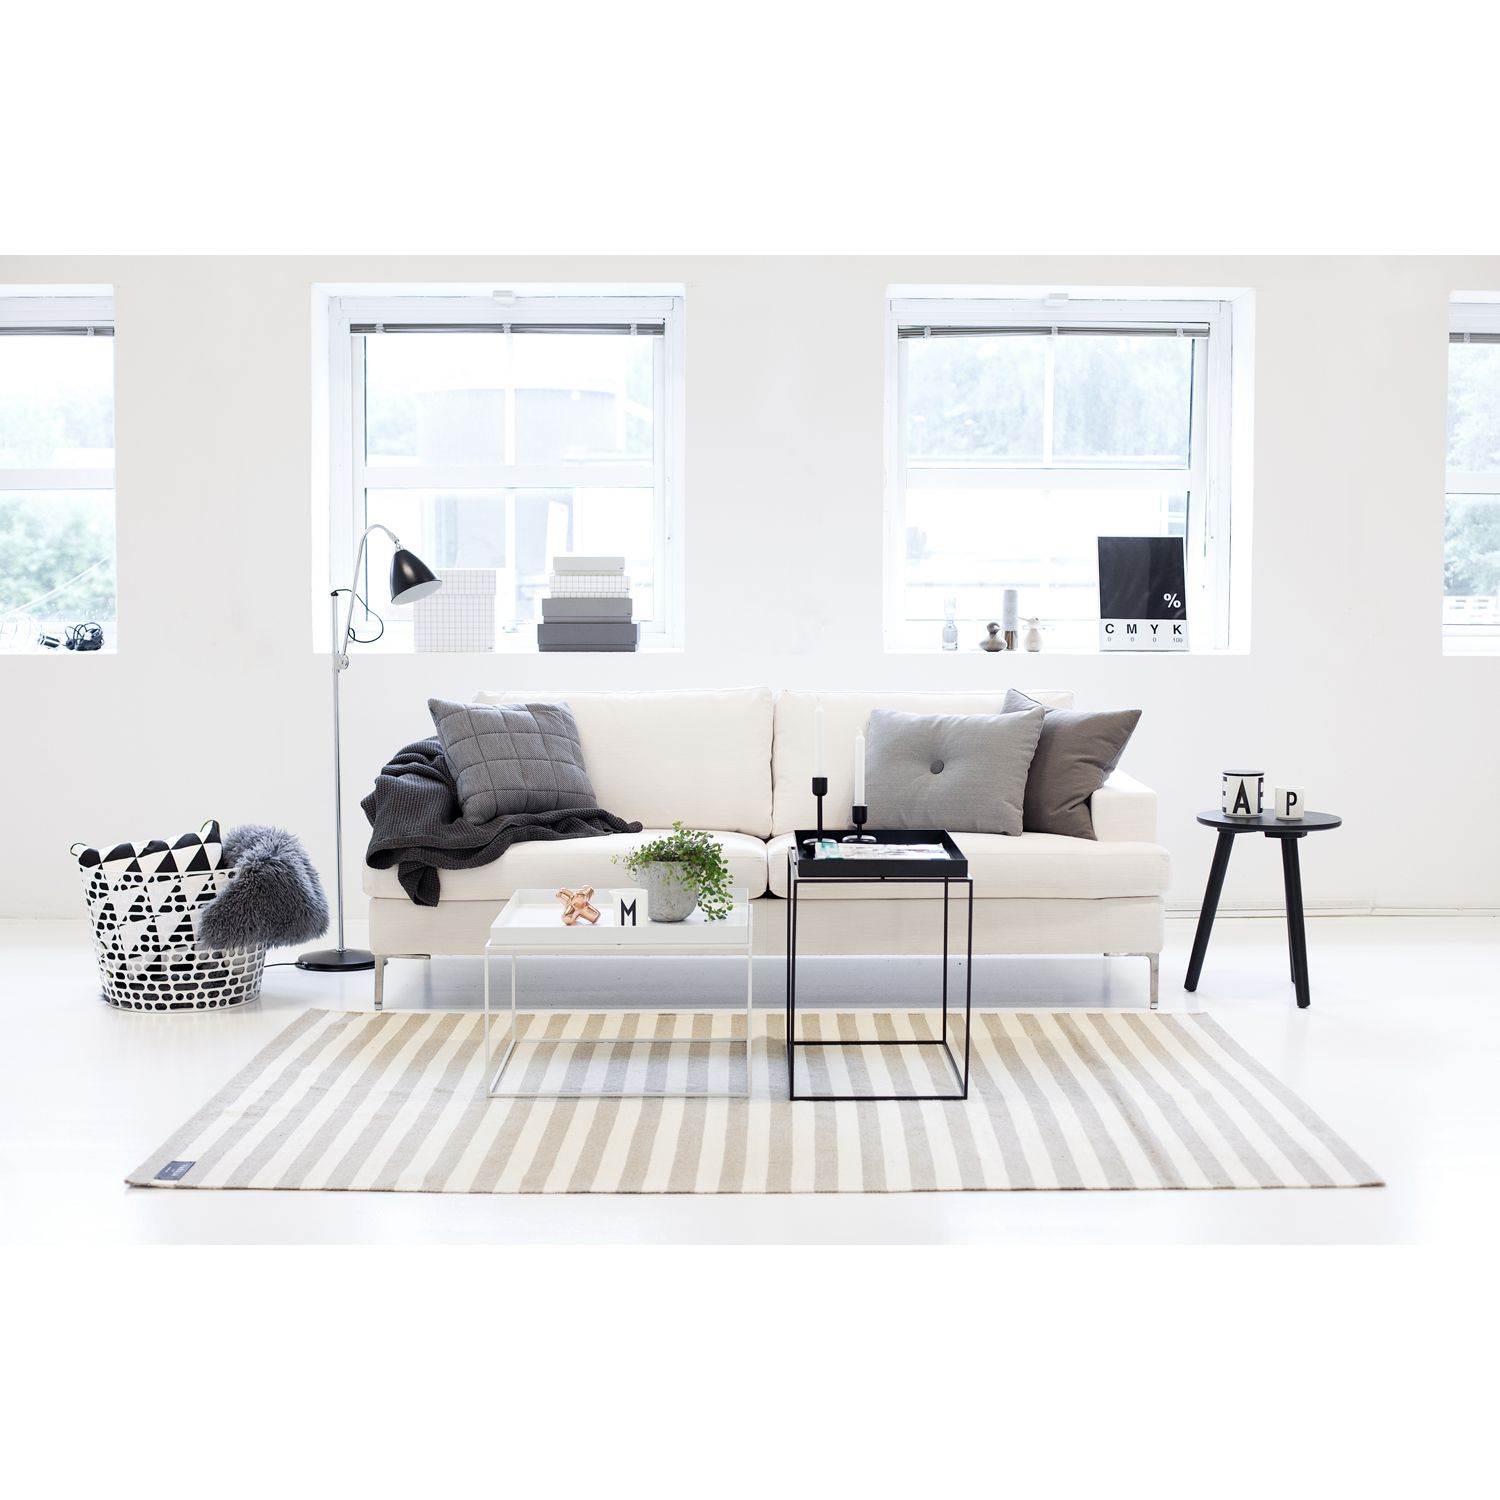 All white with grey accents Scandinavian design Nordic